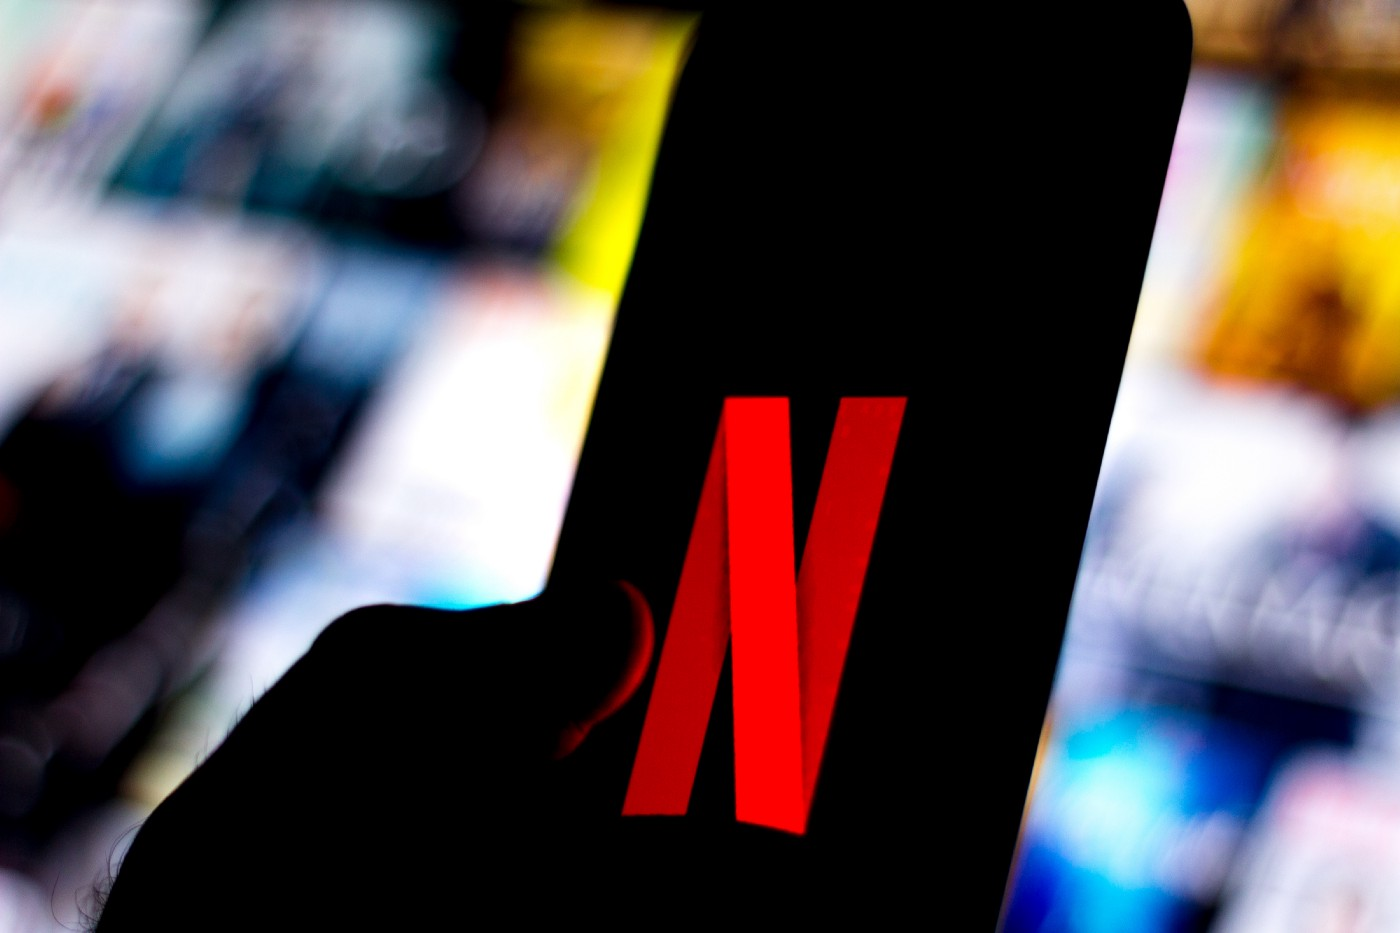 The Netflix logo is shown on a smartphone against a backdrop of blurred out Netflix show titles.